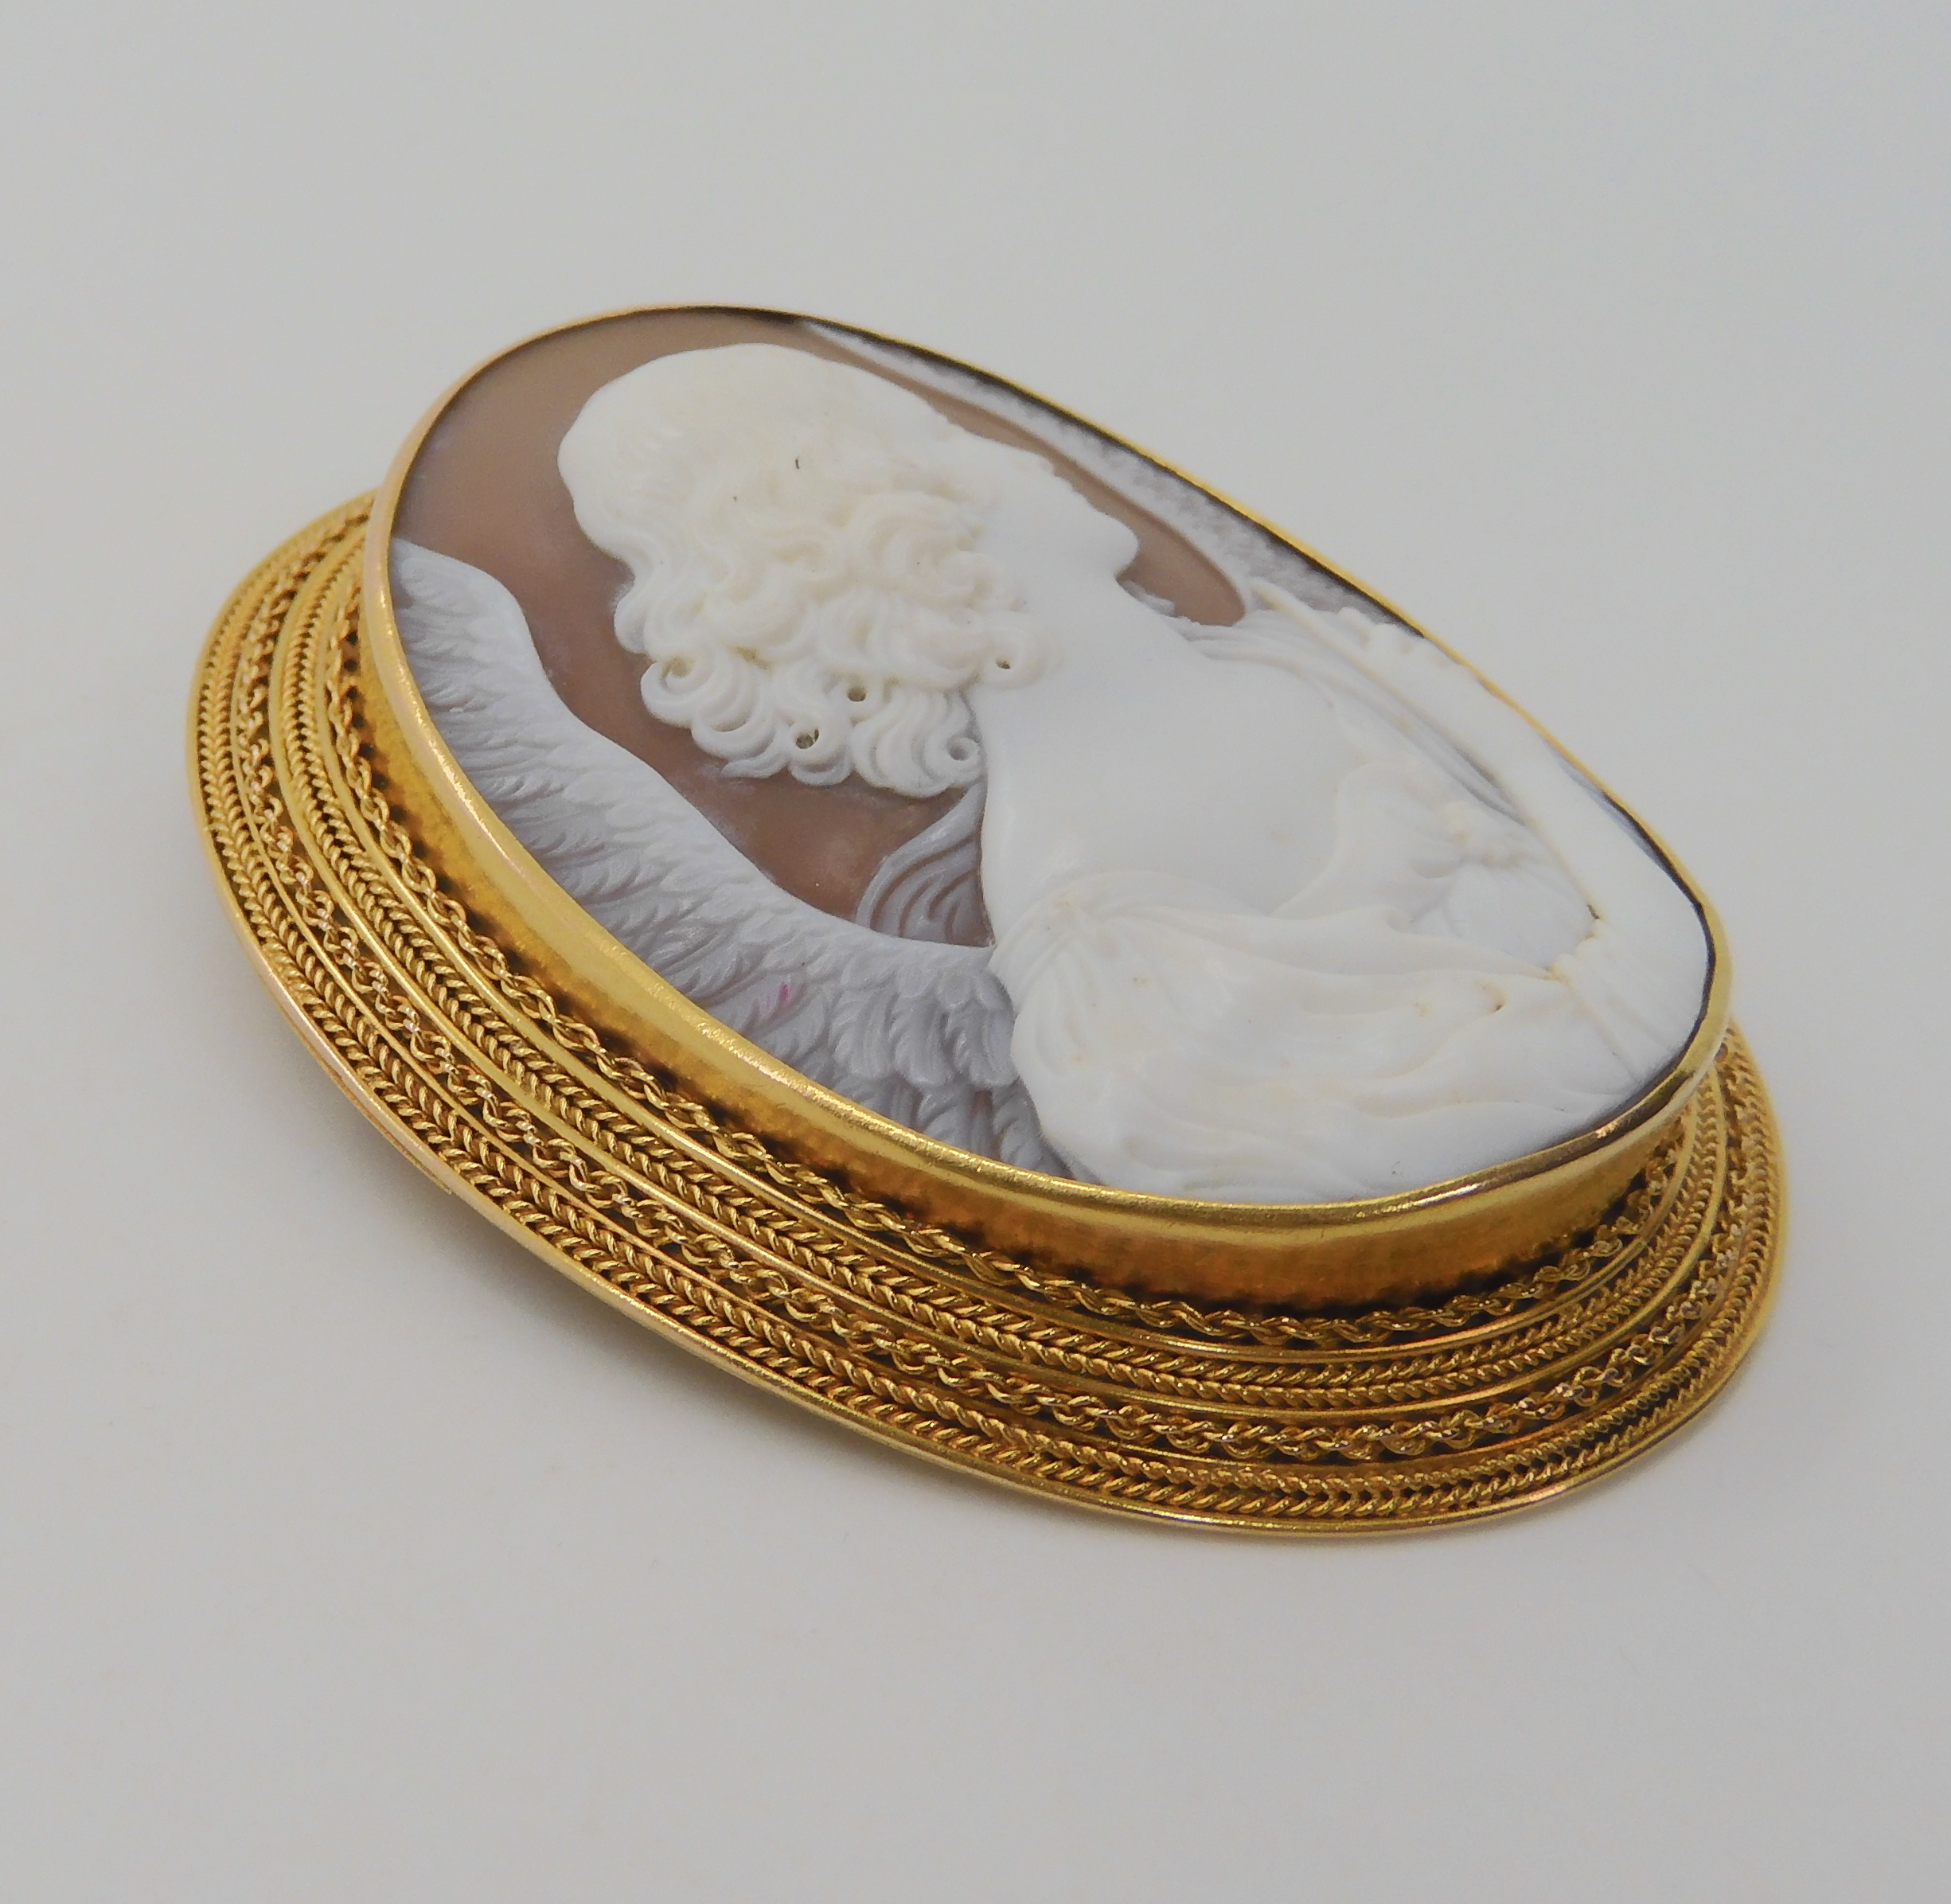 A LARGE FINE SHELL CAMEO OF AN ANGEL in a bright yellow metal rope wirework mount. Dimensions 6. - Image 3 of 6